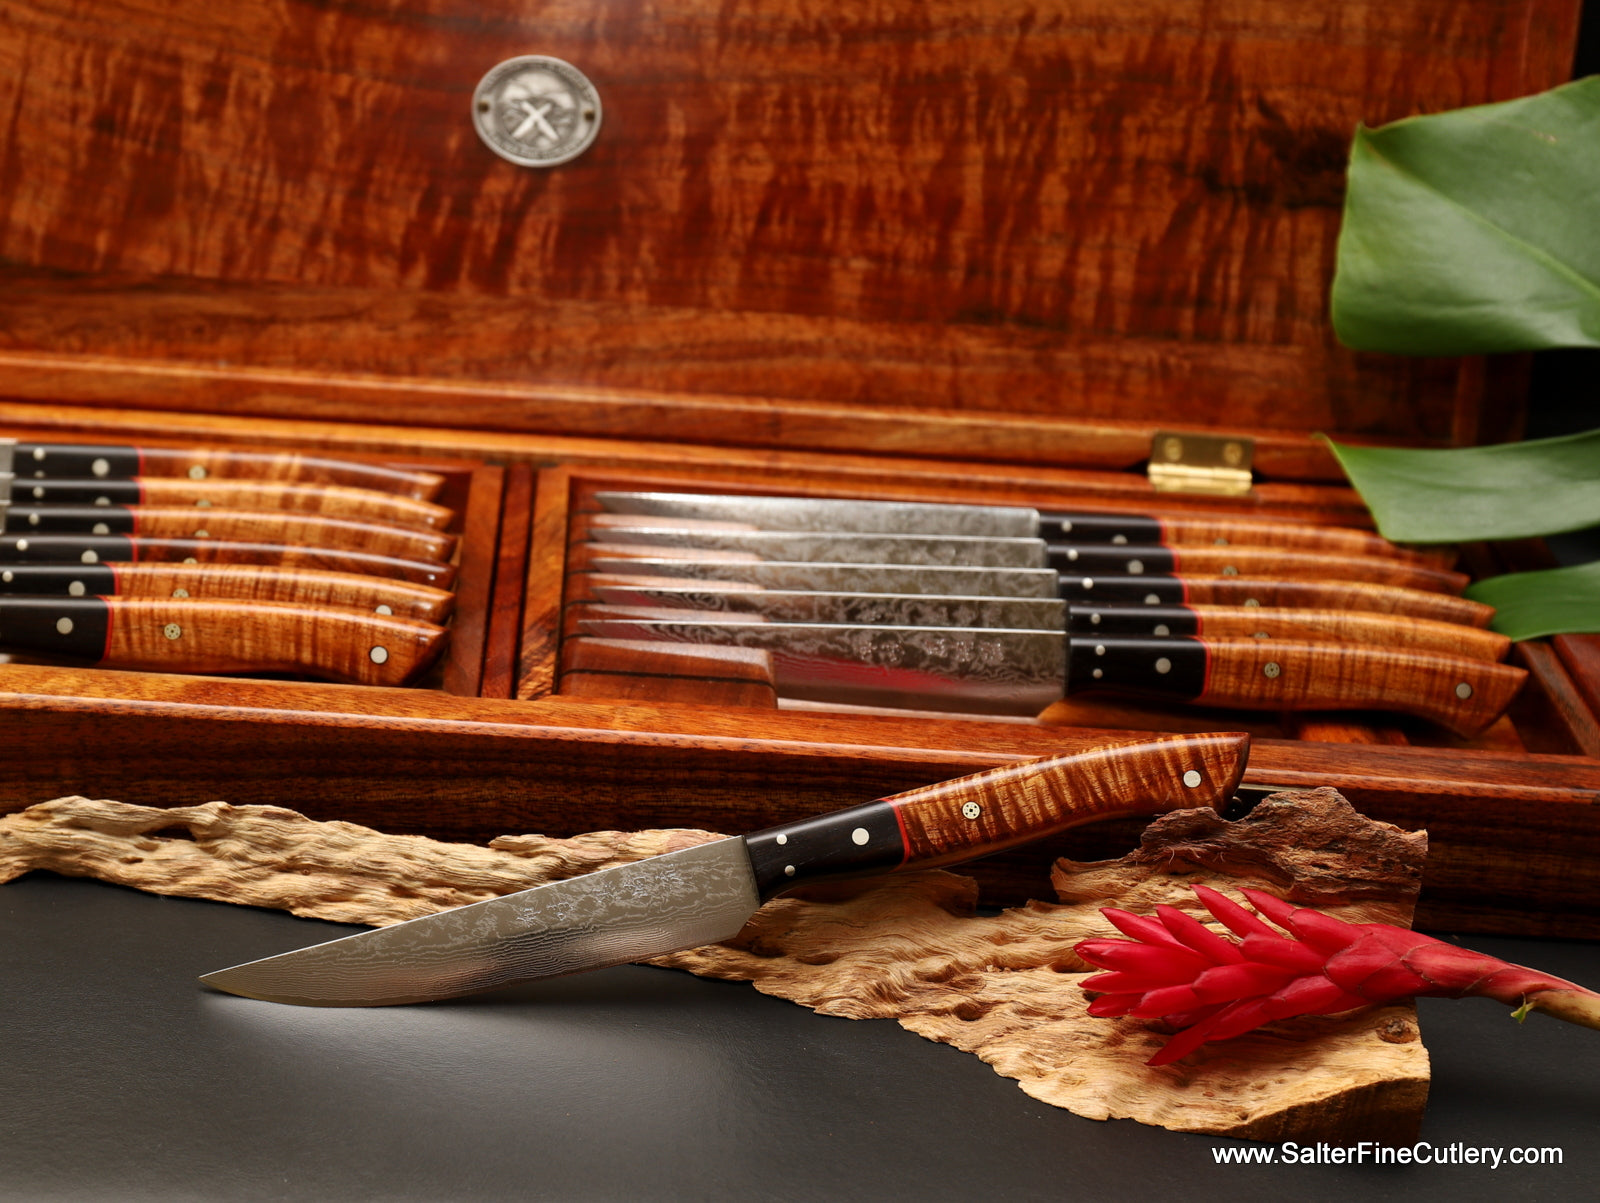 Featuring VG10 individually hand-forged damascus blades, this 12-piece luxury steak knife set in display presentation box has handles of curly Hawaiian koa wood with ebony bolsters from Salter Fine Cutlery